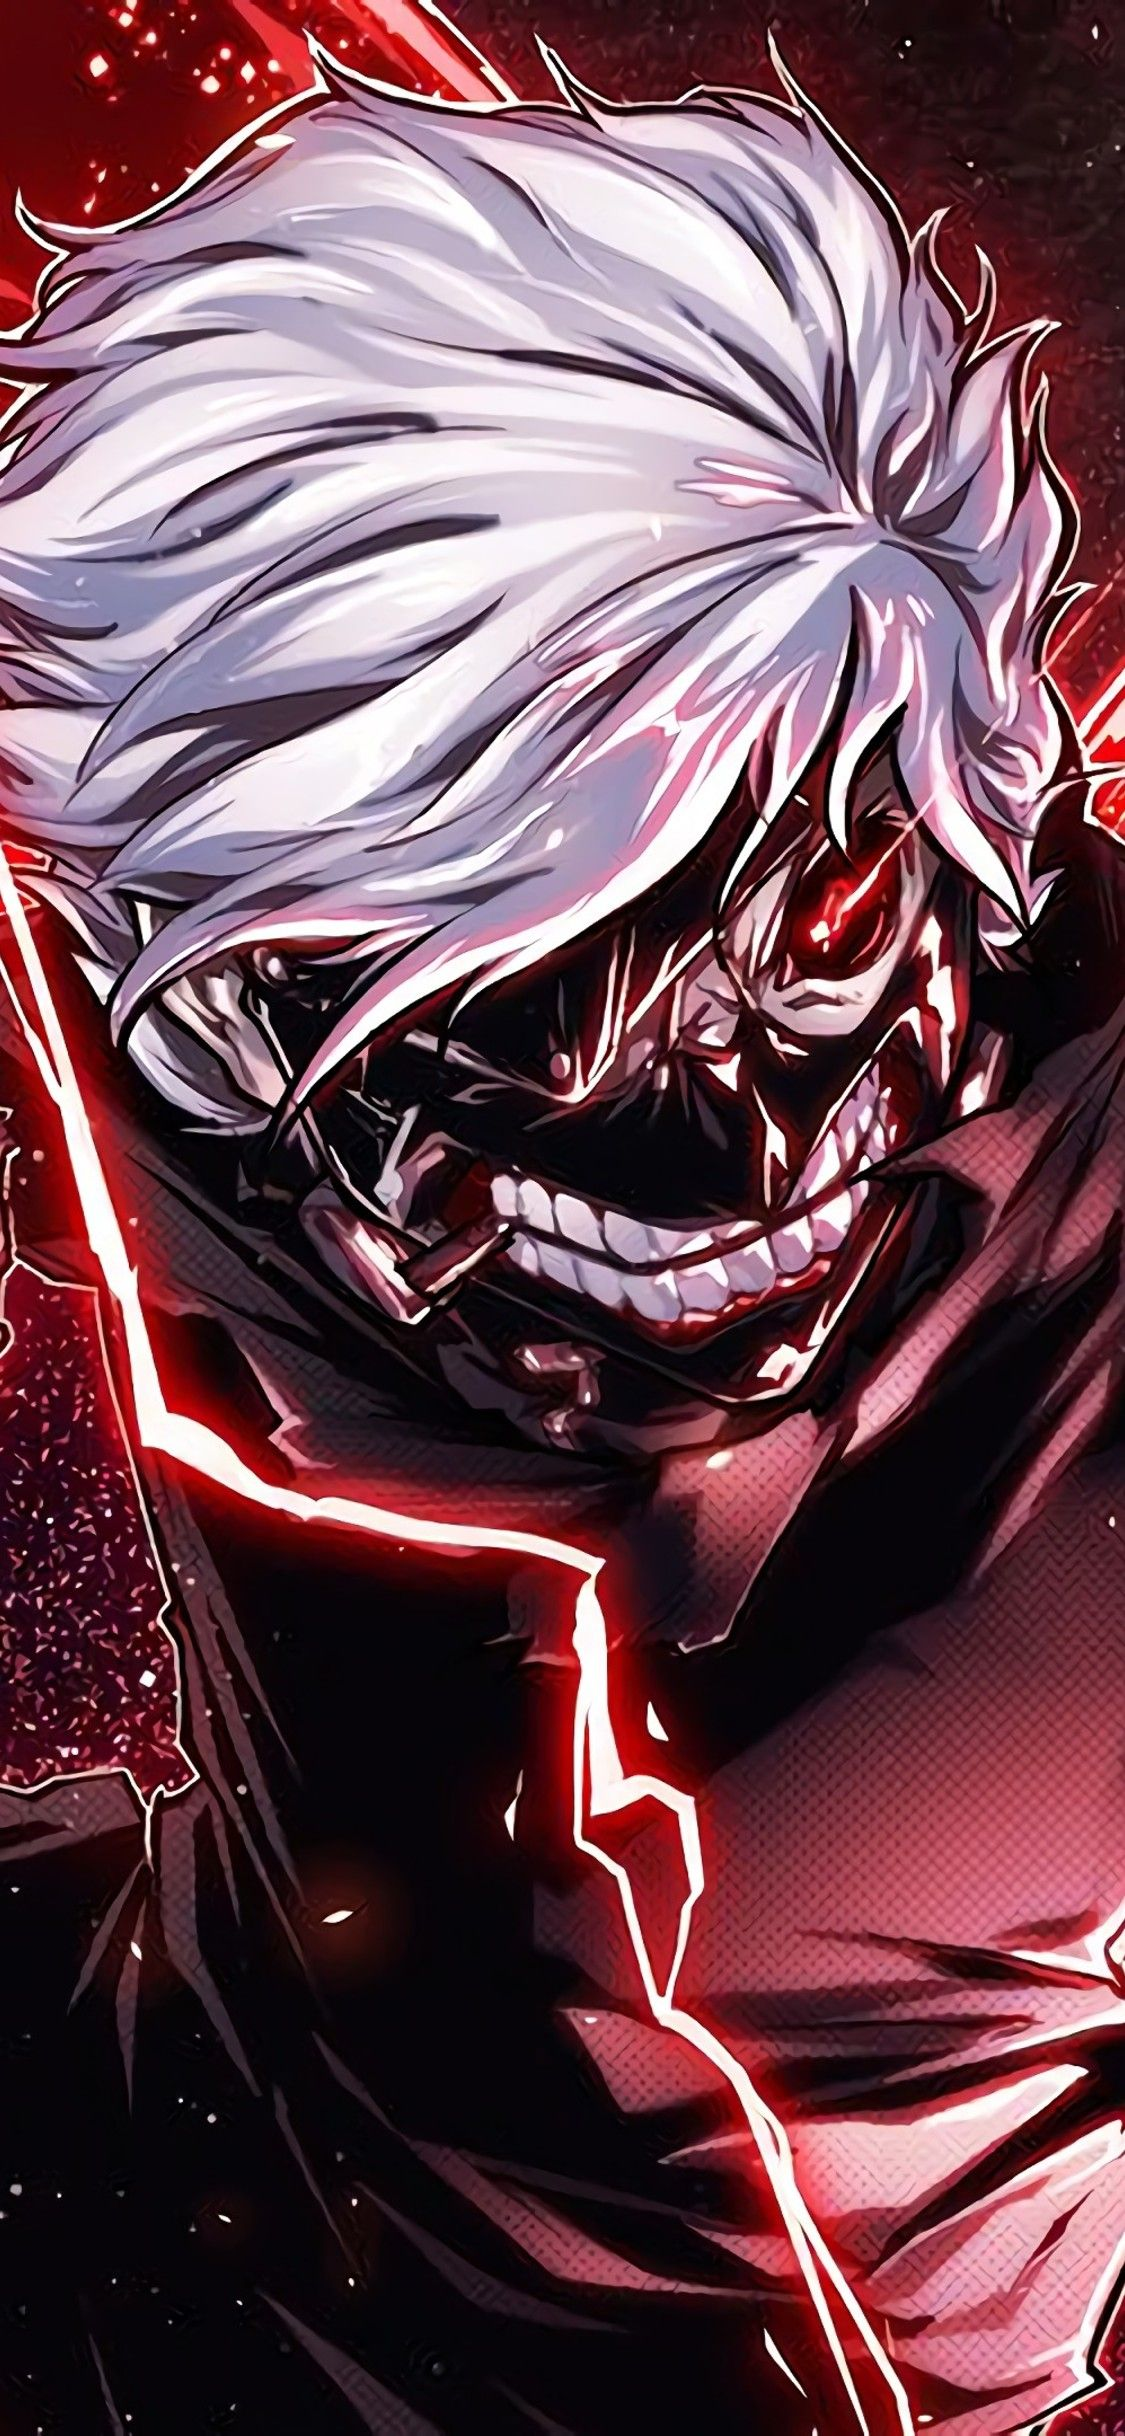 Tokyo Ghoul Anime Photo Download